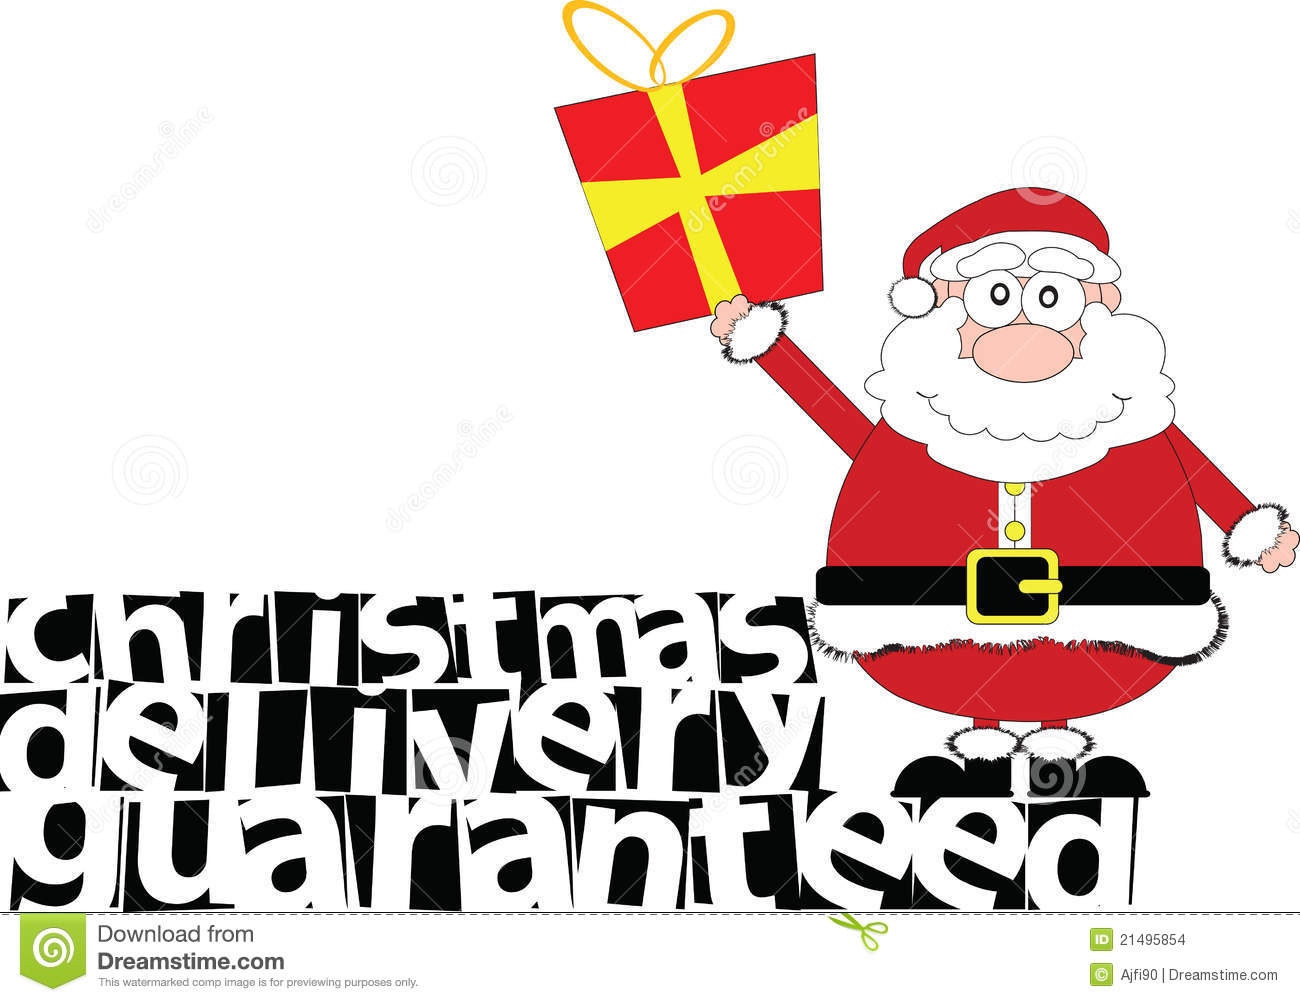 Christmas Delivery Guaranteed Stock Images - Image: 21495854